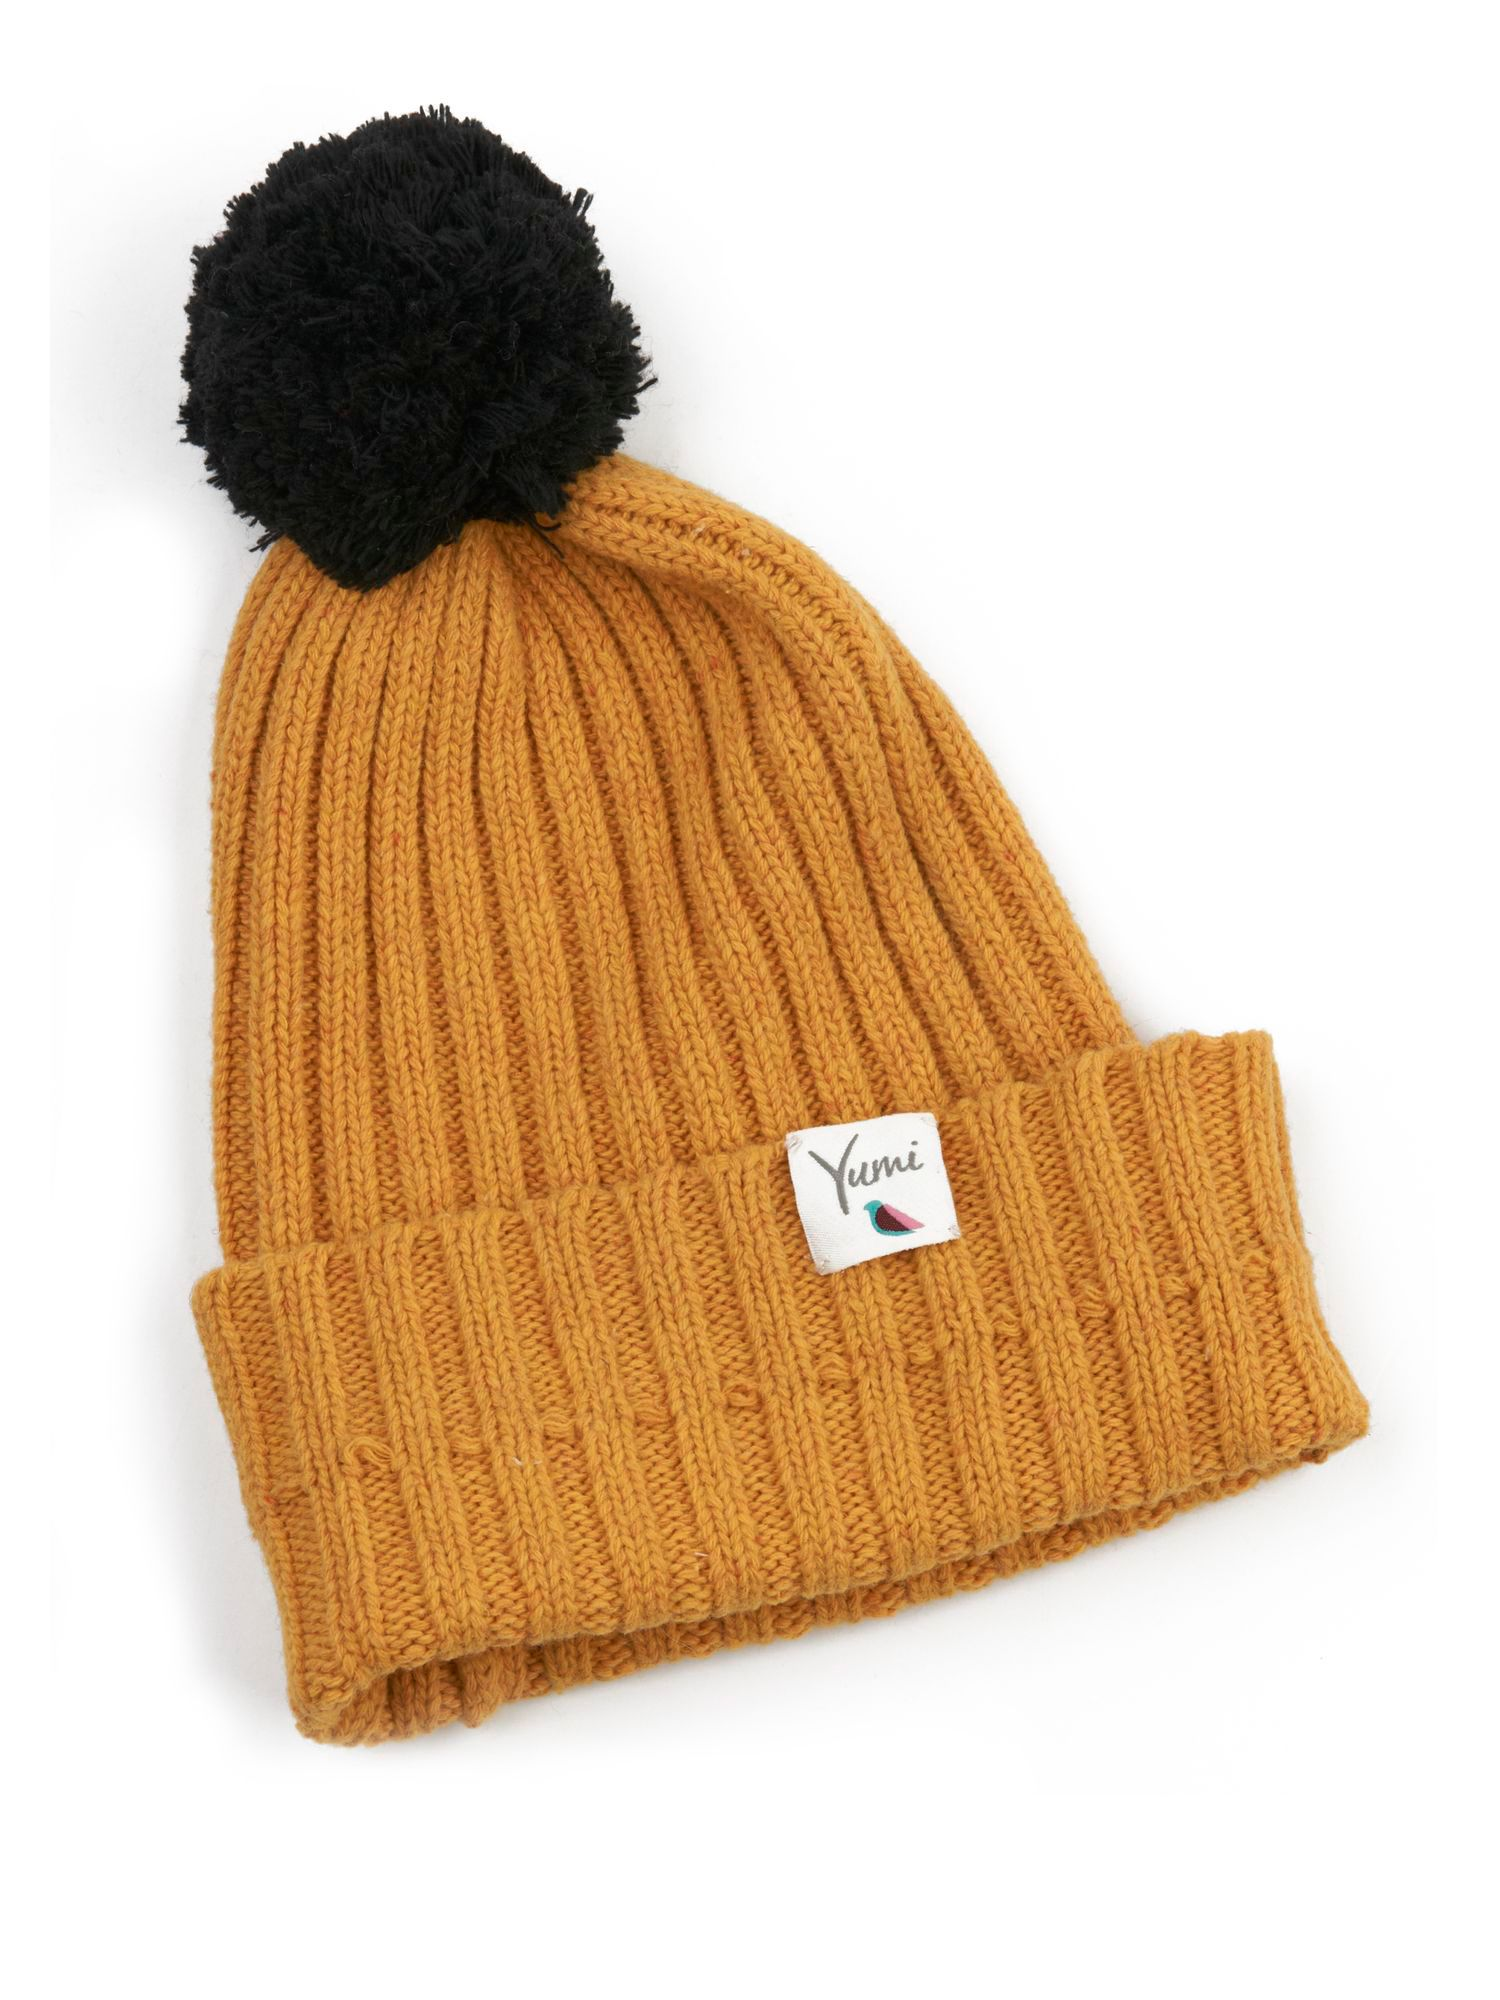 Bobble hat.